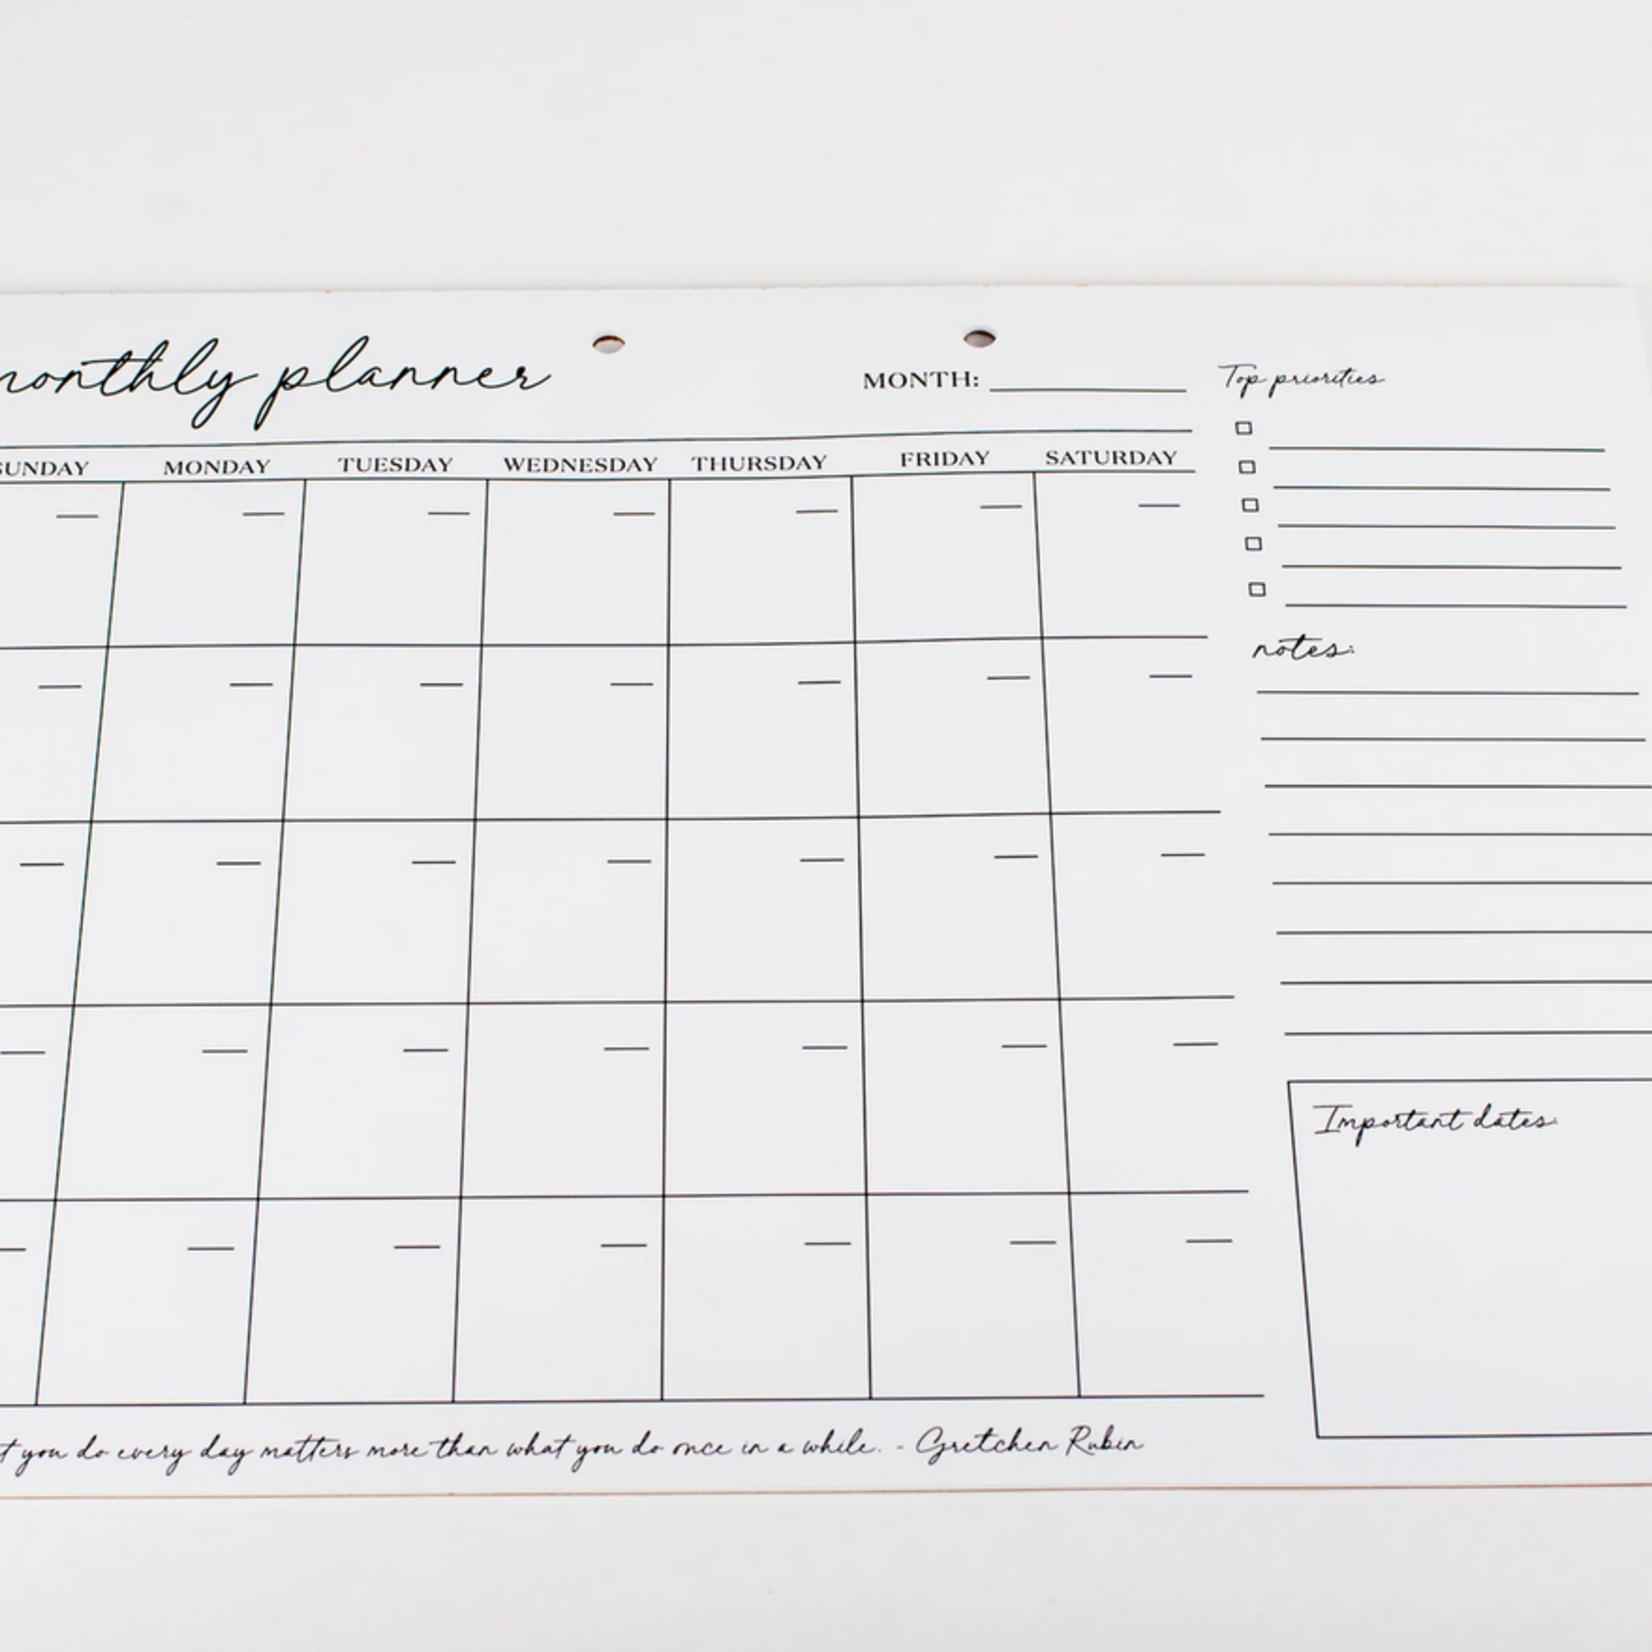 Wrinkle and Crease Start your own Date - Monthly Planner